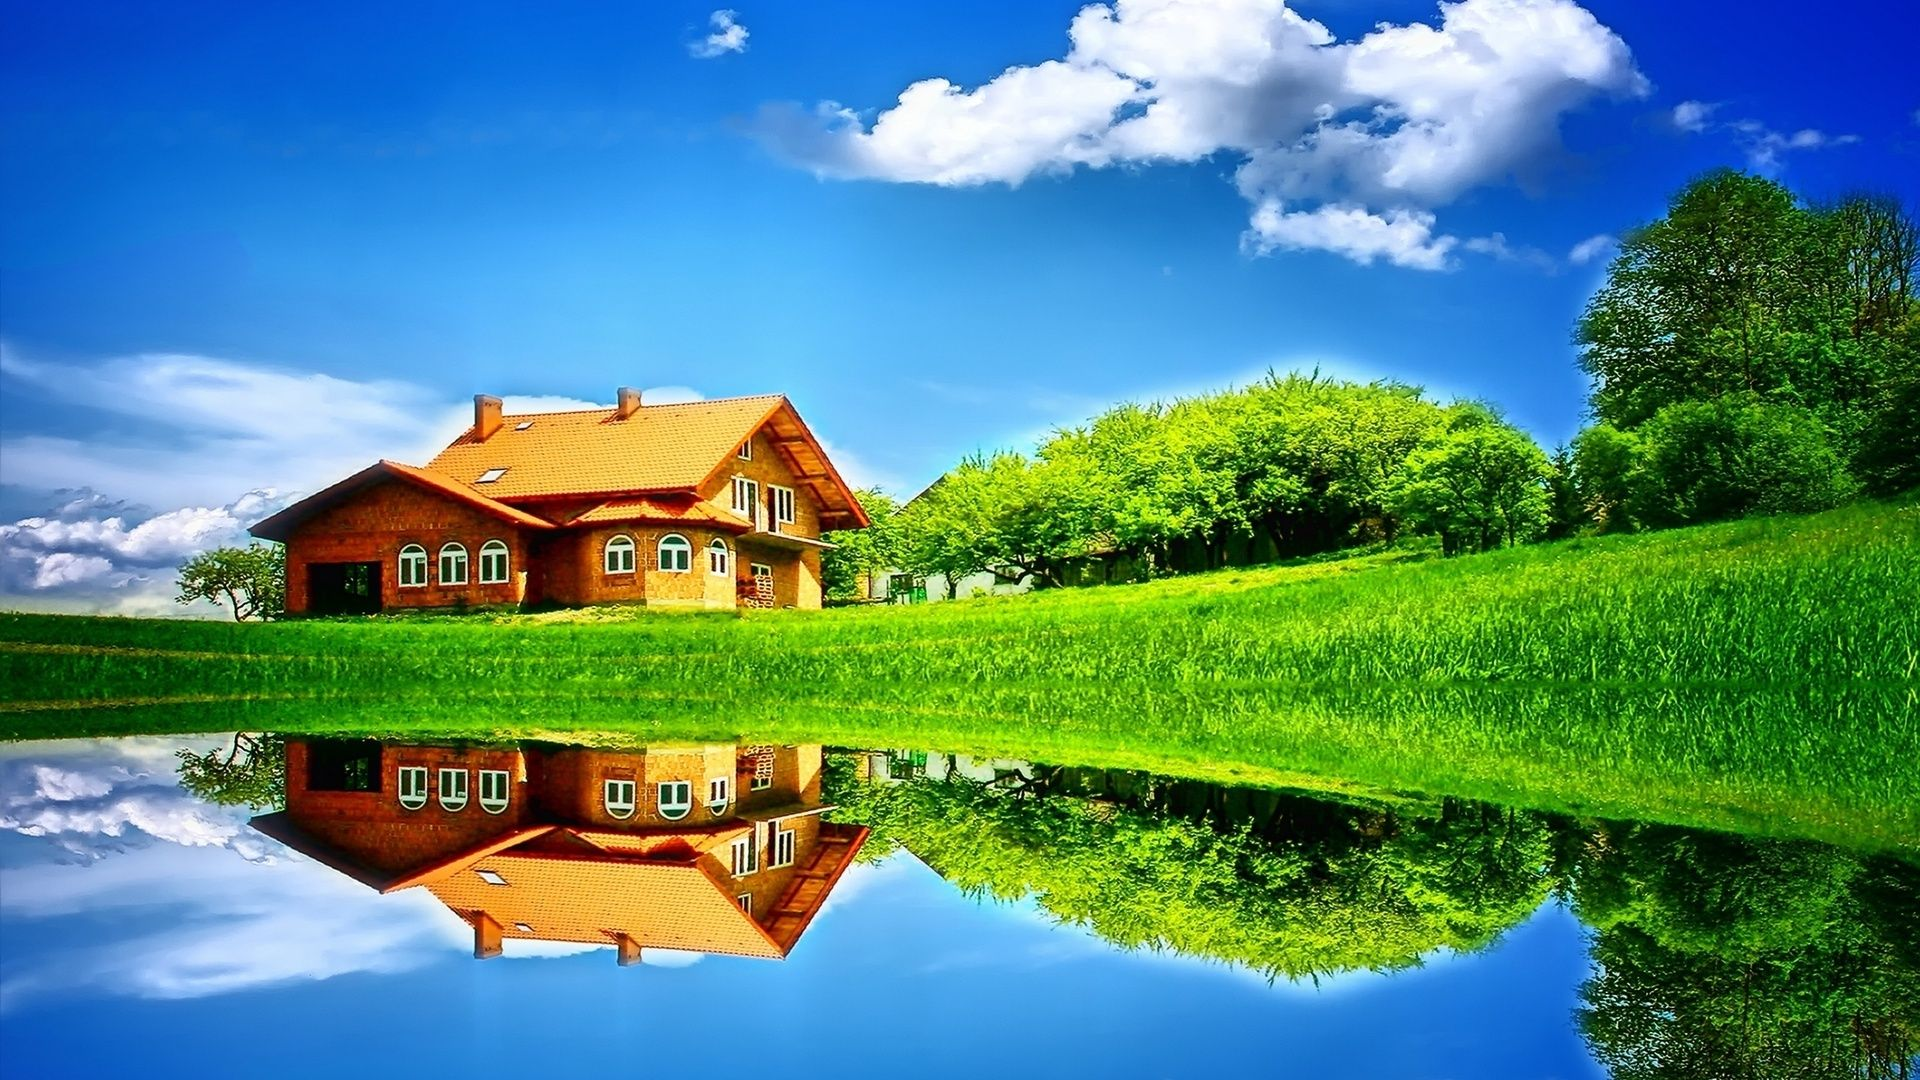 House reflected in the lake wallpaper Wallpapers Home 1920x1080